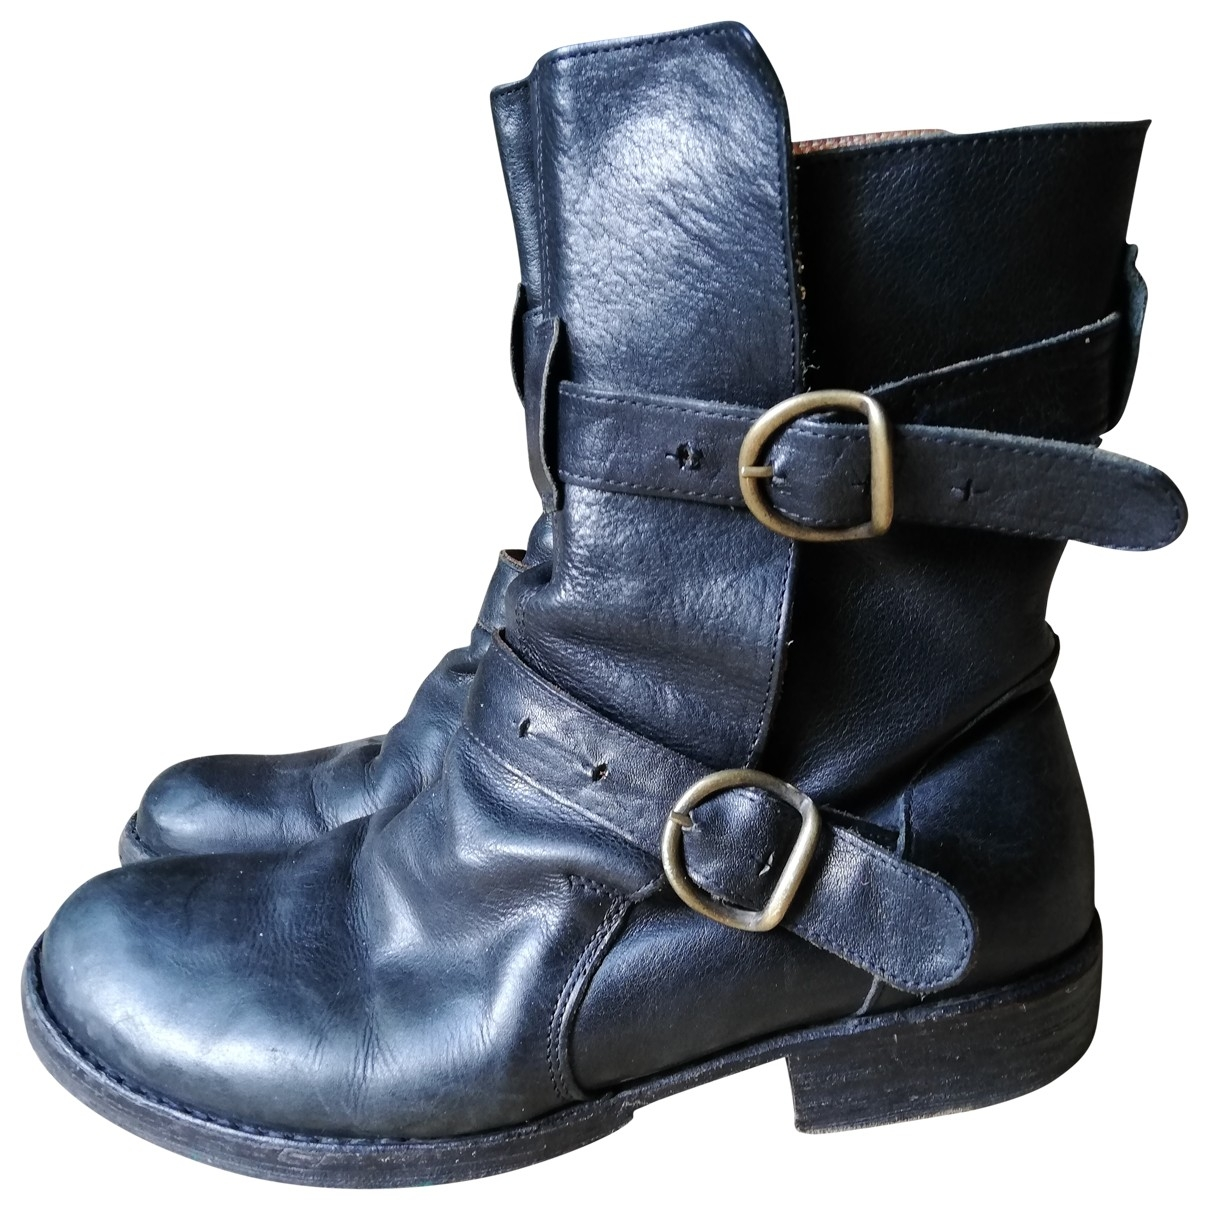 Fiorentini+baker \N Black Leather Ankle boots for Women 39 EU